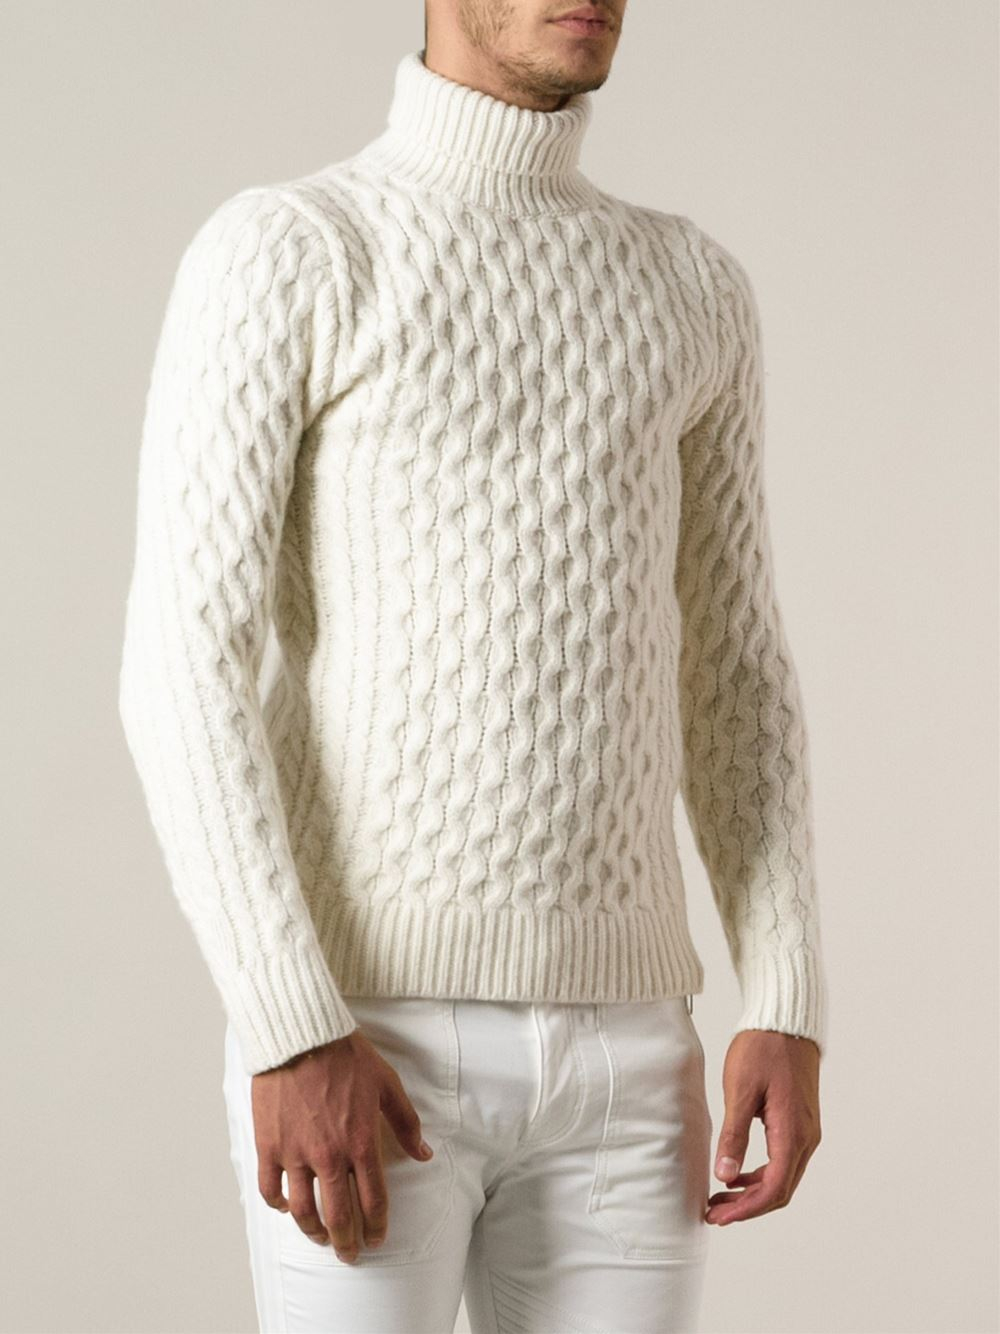 Lyst Diesel Cable Knit Turtleneck Sweater In White For Men